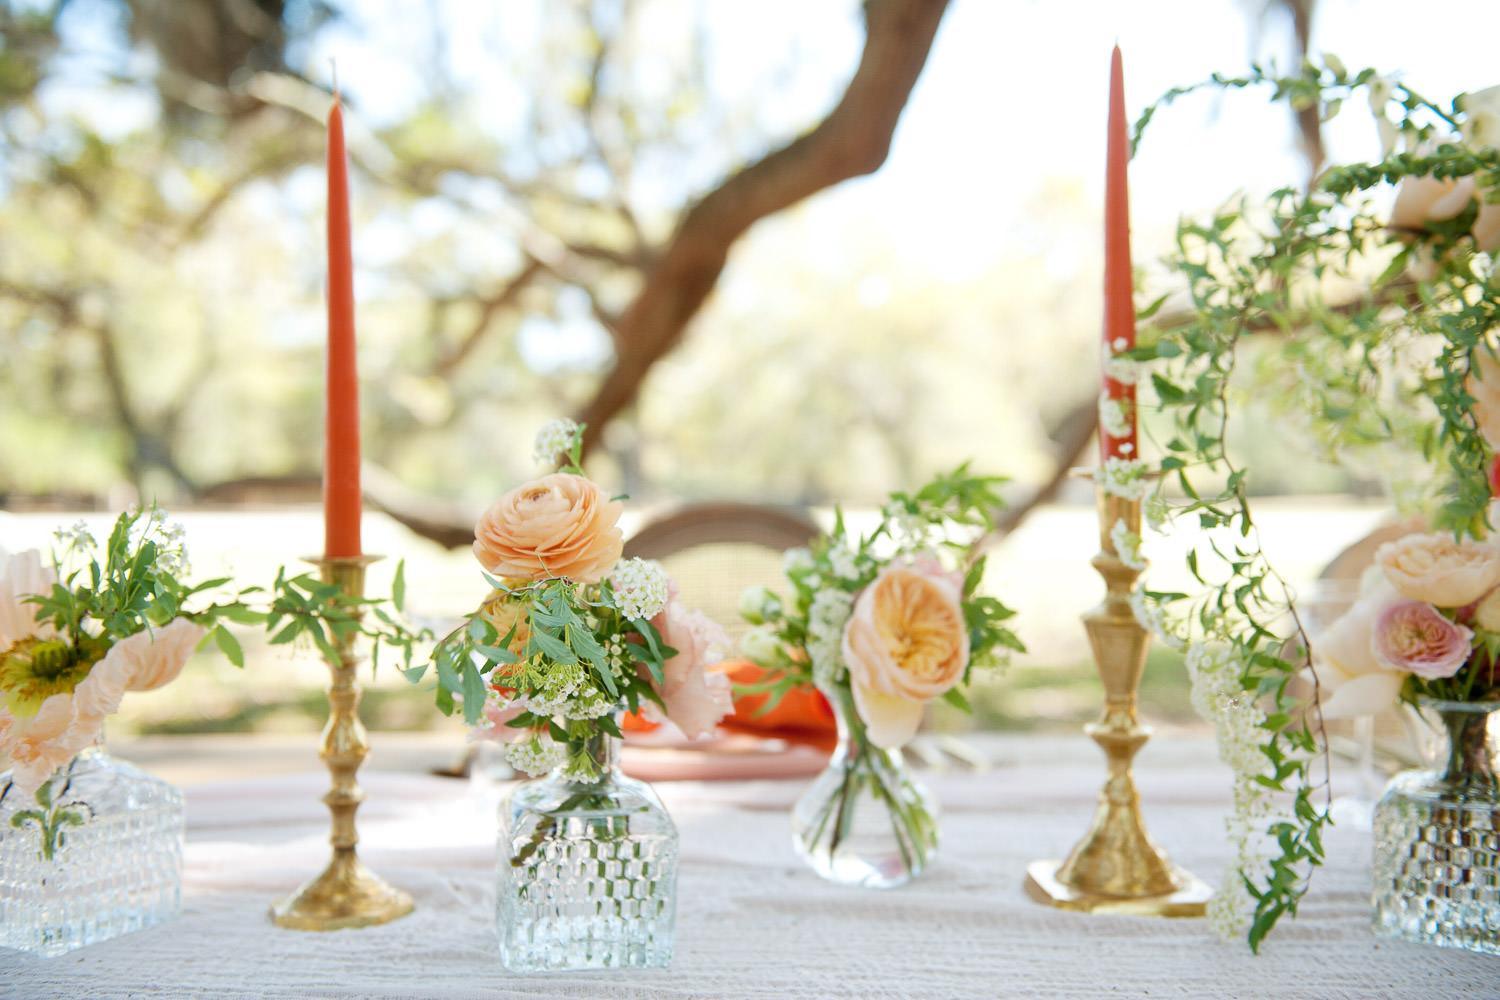 Vases and candles on the head table at a garden wedding captured by Tara Whittaker Photography